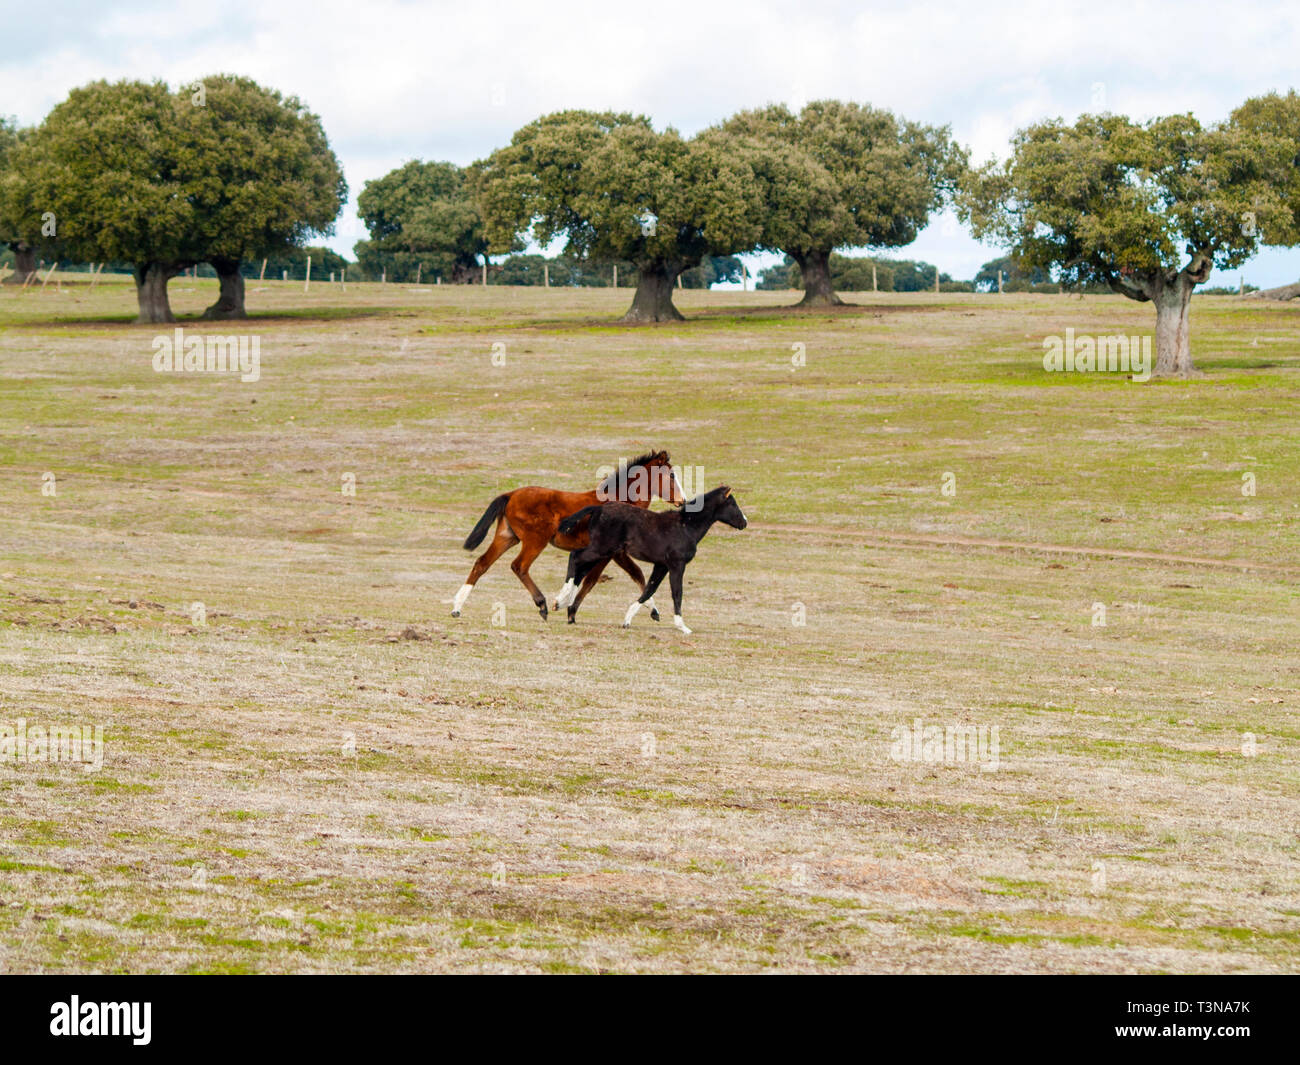 A brown horse and a black colt galloping in the dehesa in Salamanca (Spain). Ecological extensive livestock concept. - Stock Image